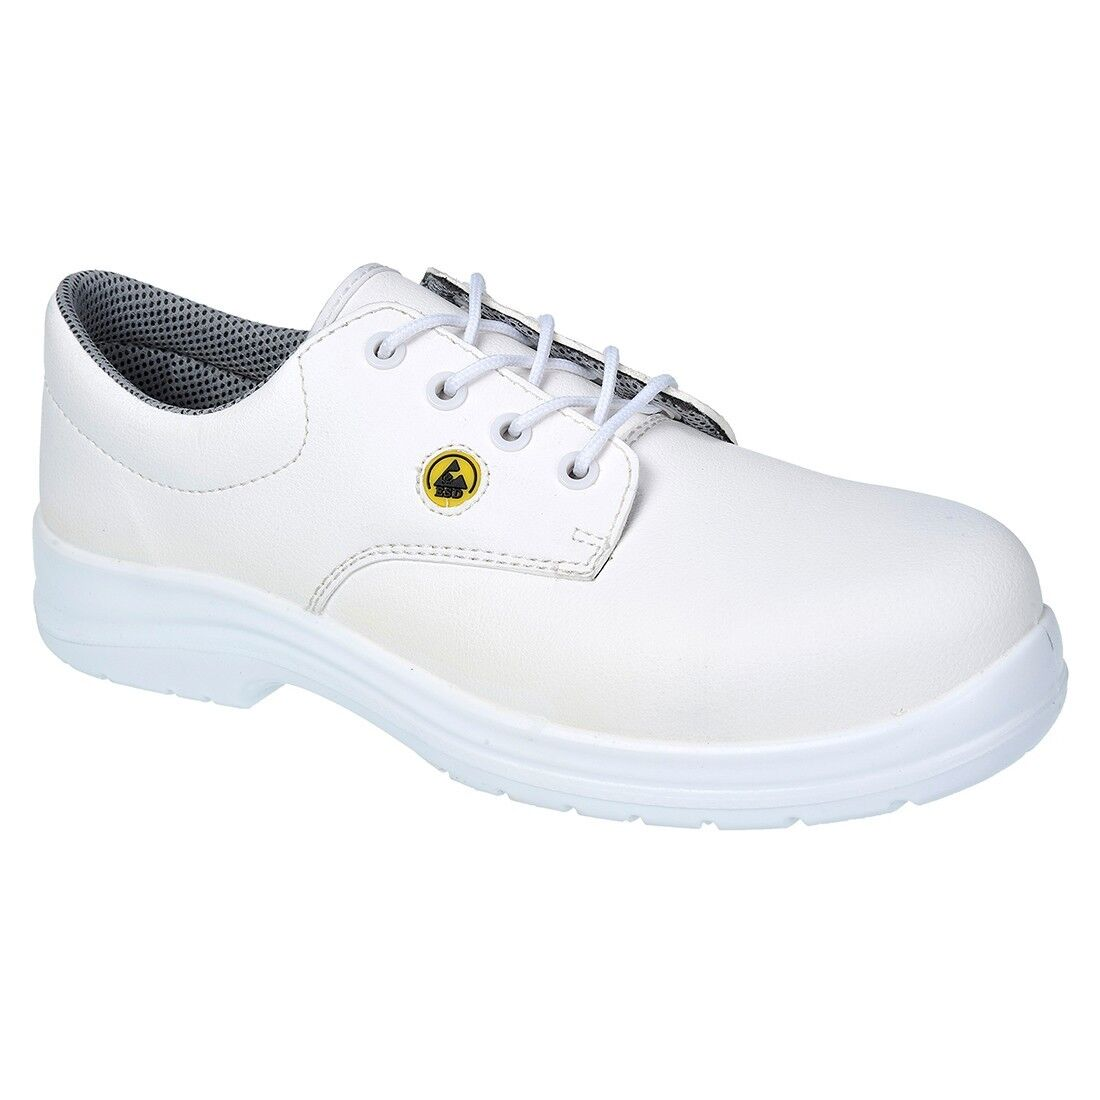 Portwest ESD Safety shoes  S1 FC01 BNWT Free Delivery